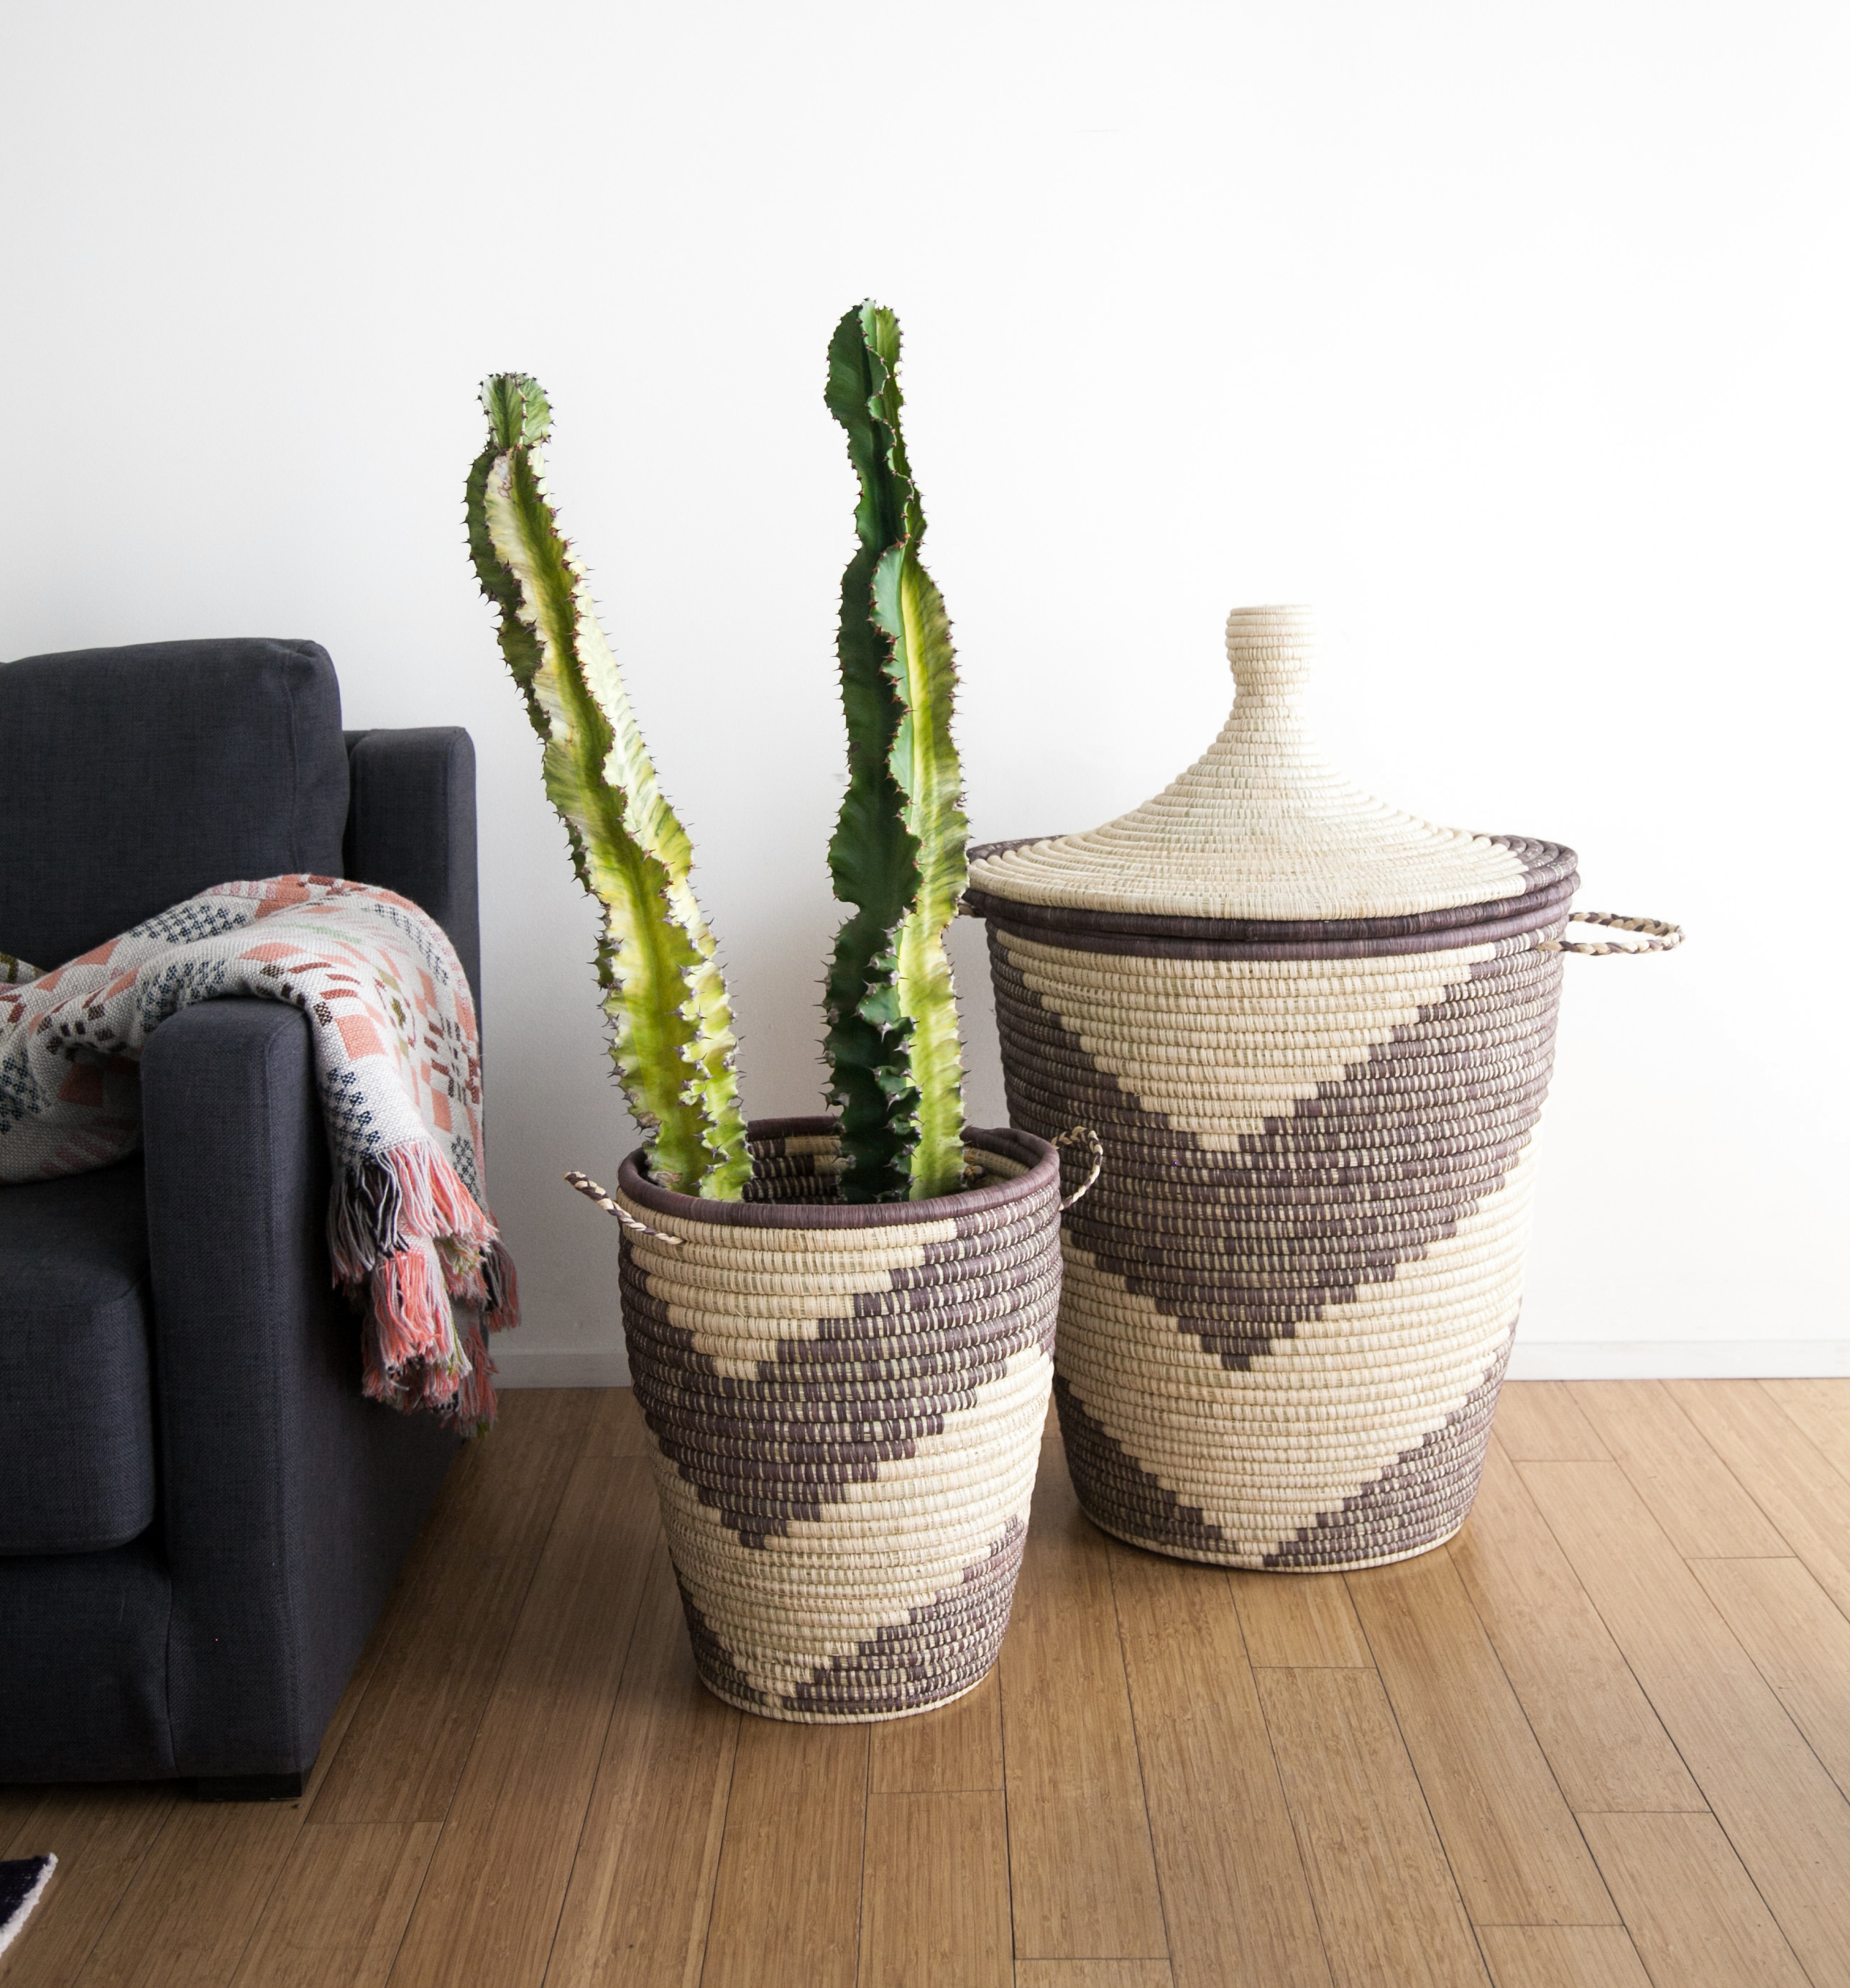 r+fhomegoods-basketstogether